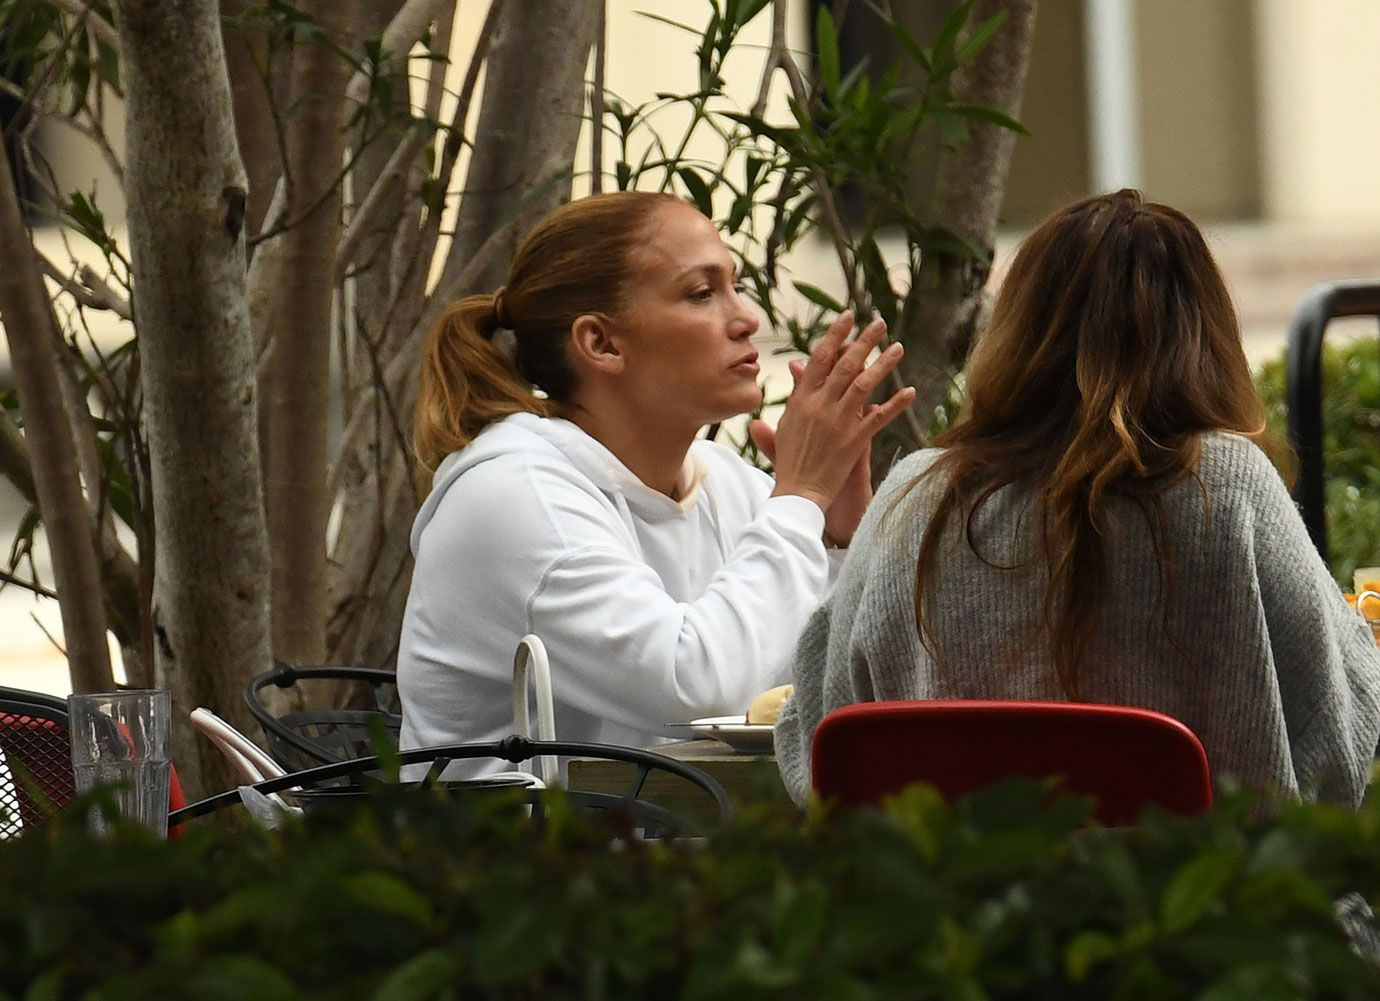 jennifer-lopez-leaves-gym-lunch-with-friends-06-1610554295726.jpg